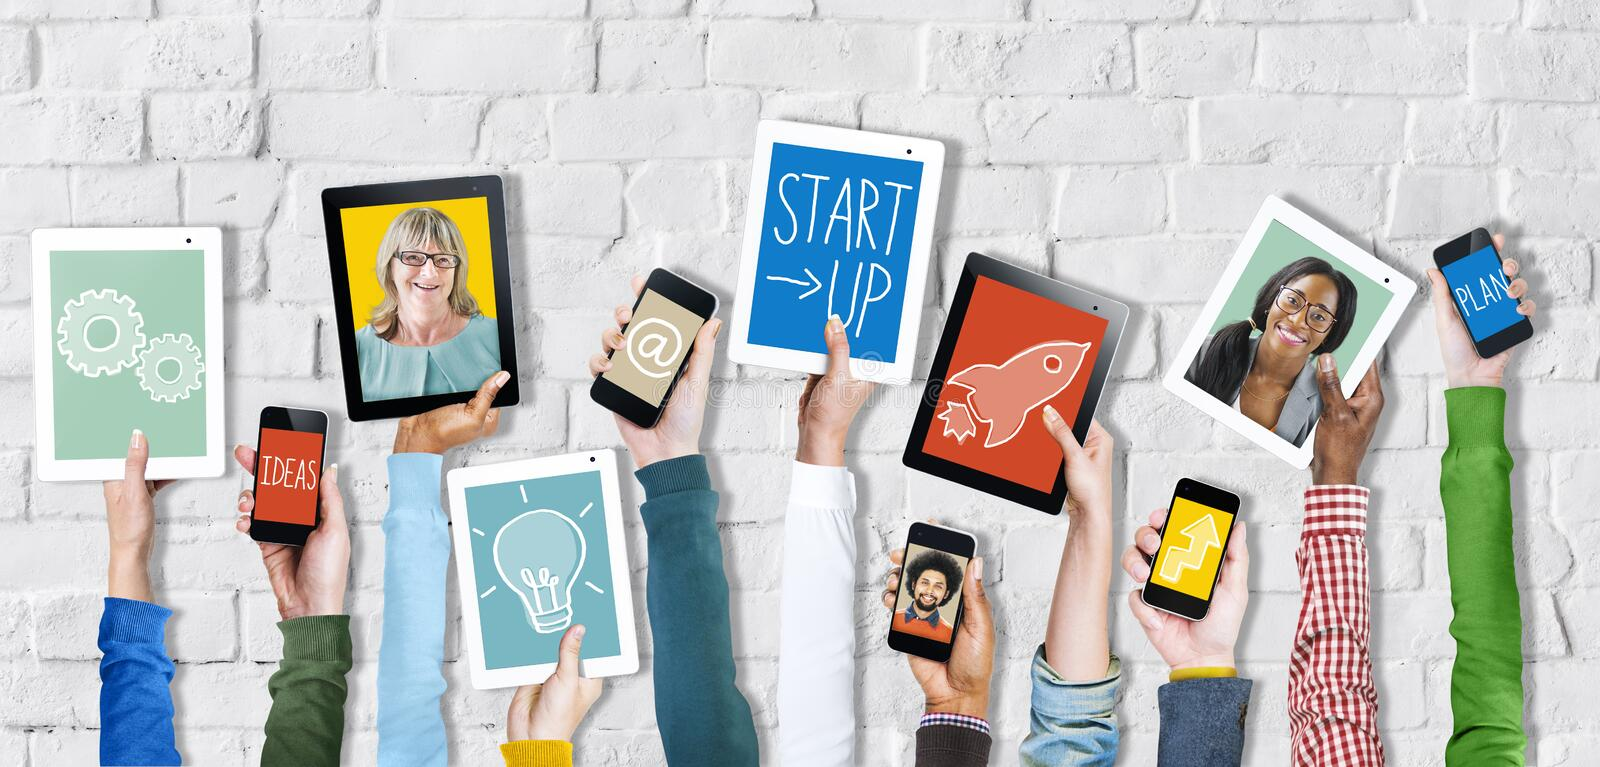 Hands Holding Digital Devices with Startup Concepts. Group of Hands Holding Digital Devices with Startup Concept royalty free stock image